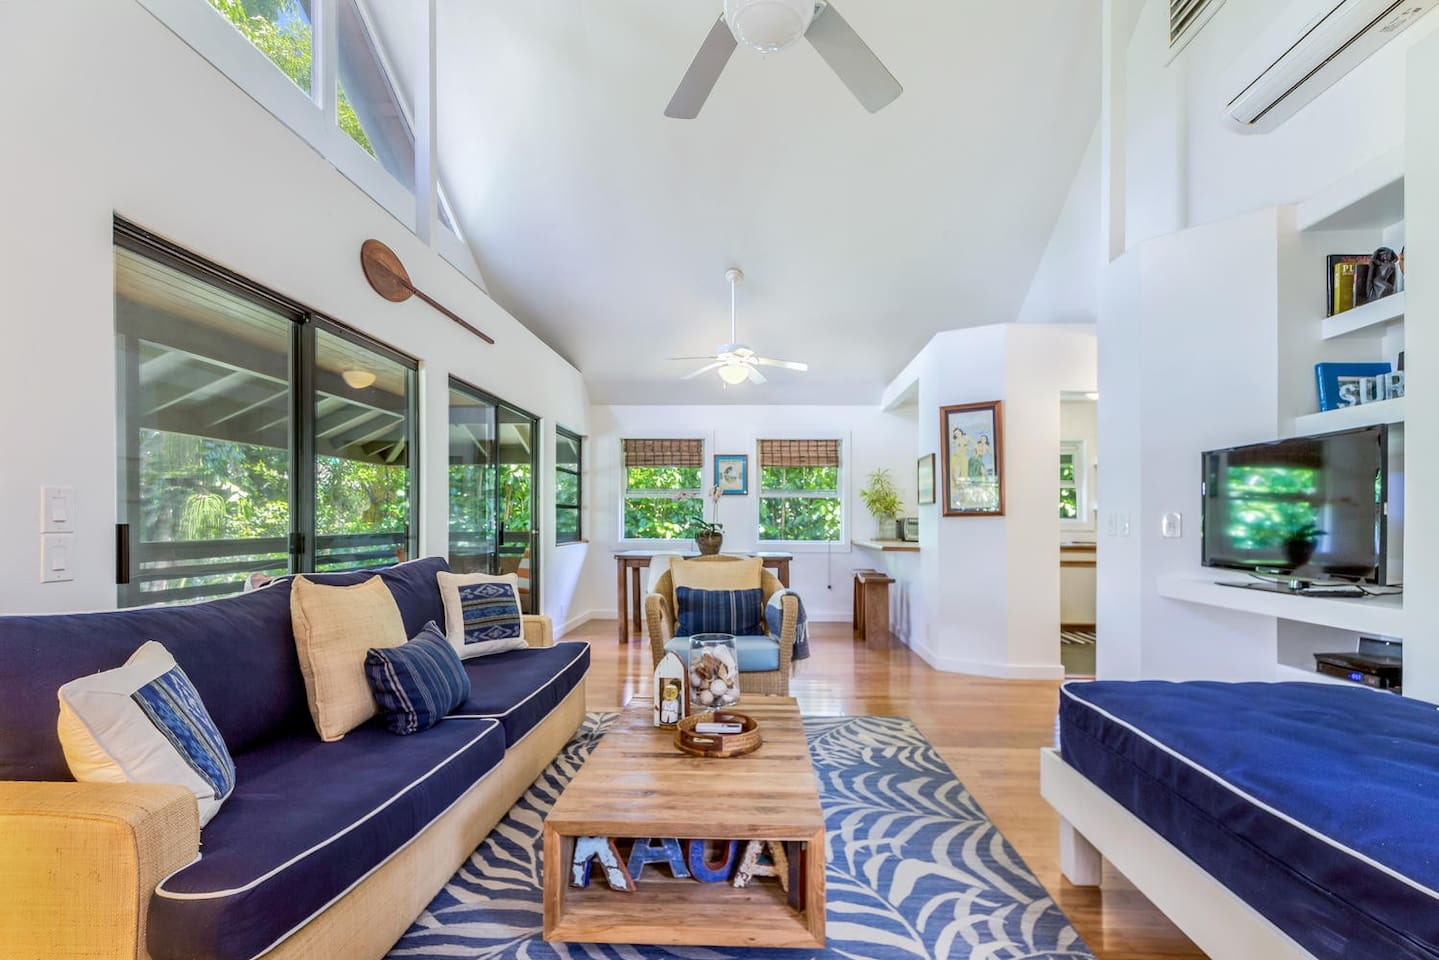 Hanalei Hale, steps to Hanalei Bay, Bright, Clean, Comfortable, AC, Bikes, Boards and More